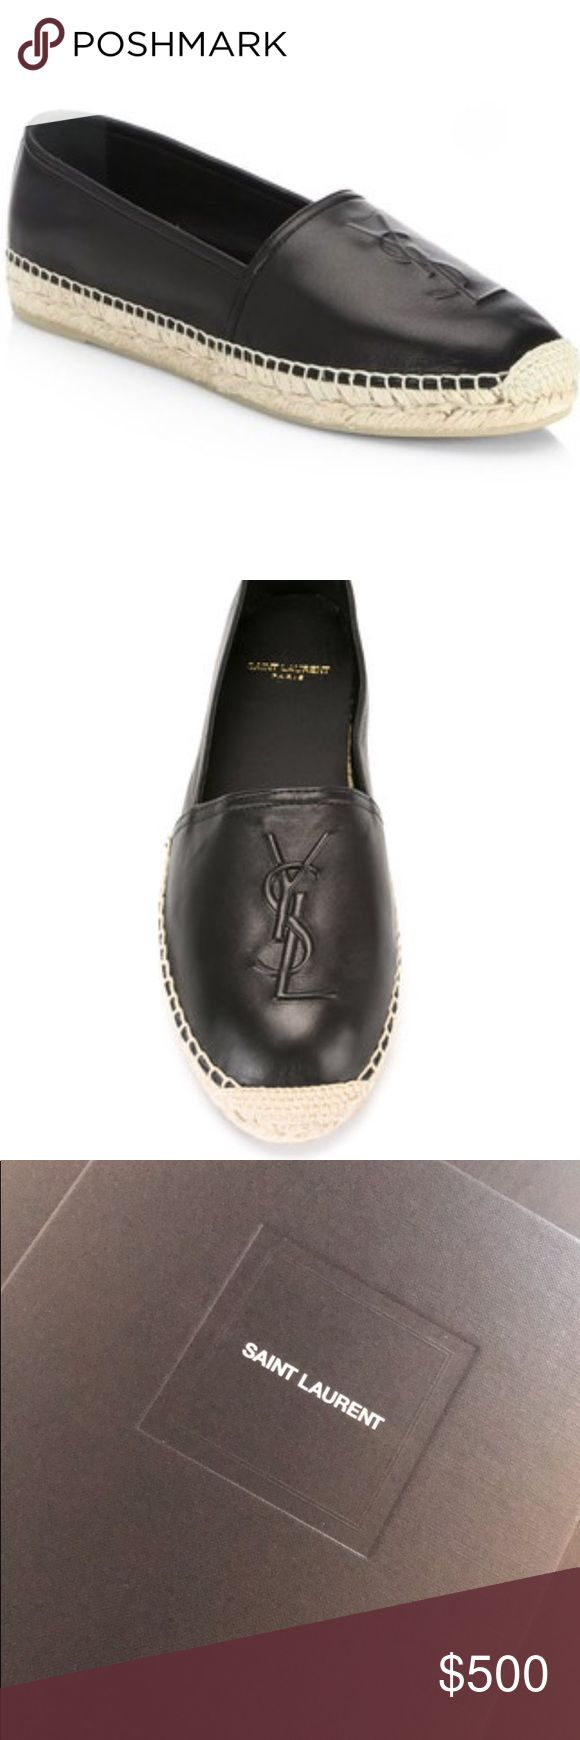 YSL ESPADRILLES Brand new purchased from saks online, too big & my size is no longer available. Will return if I don't get any offers/purchased. PRICE IS FIRM. Will post pictures & box later today Saint Laurent Shoes Espadrilles